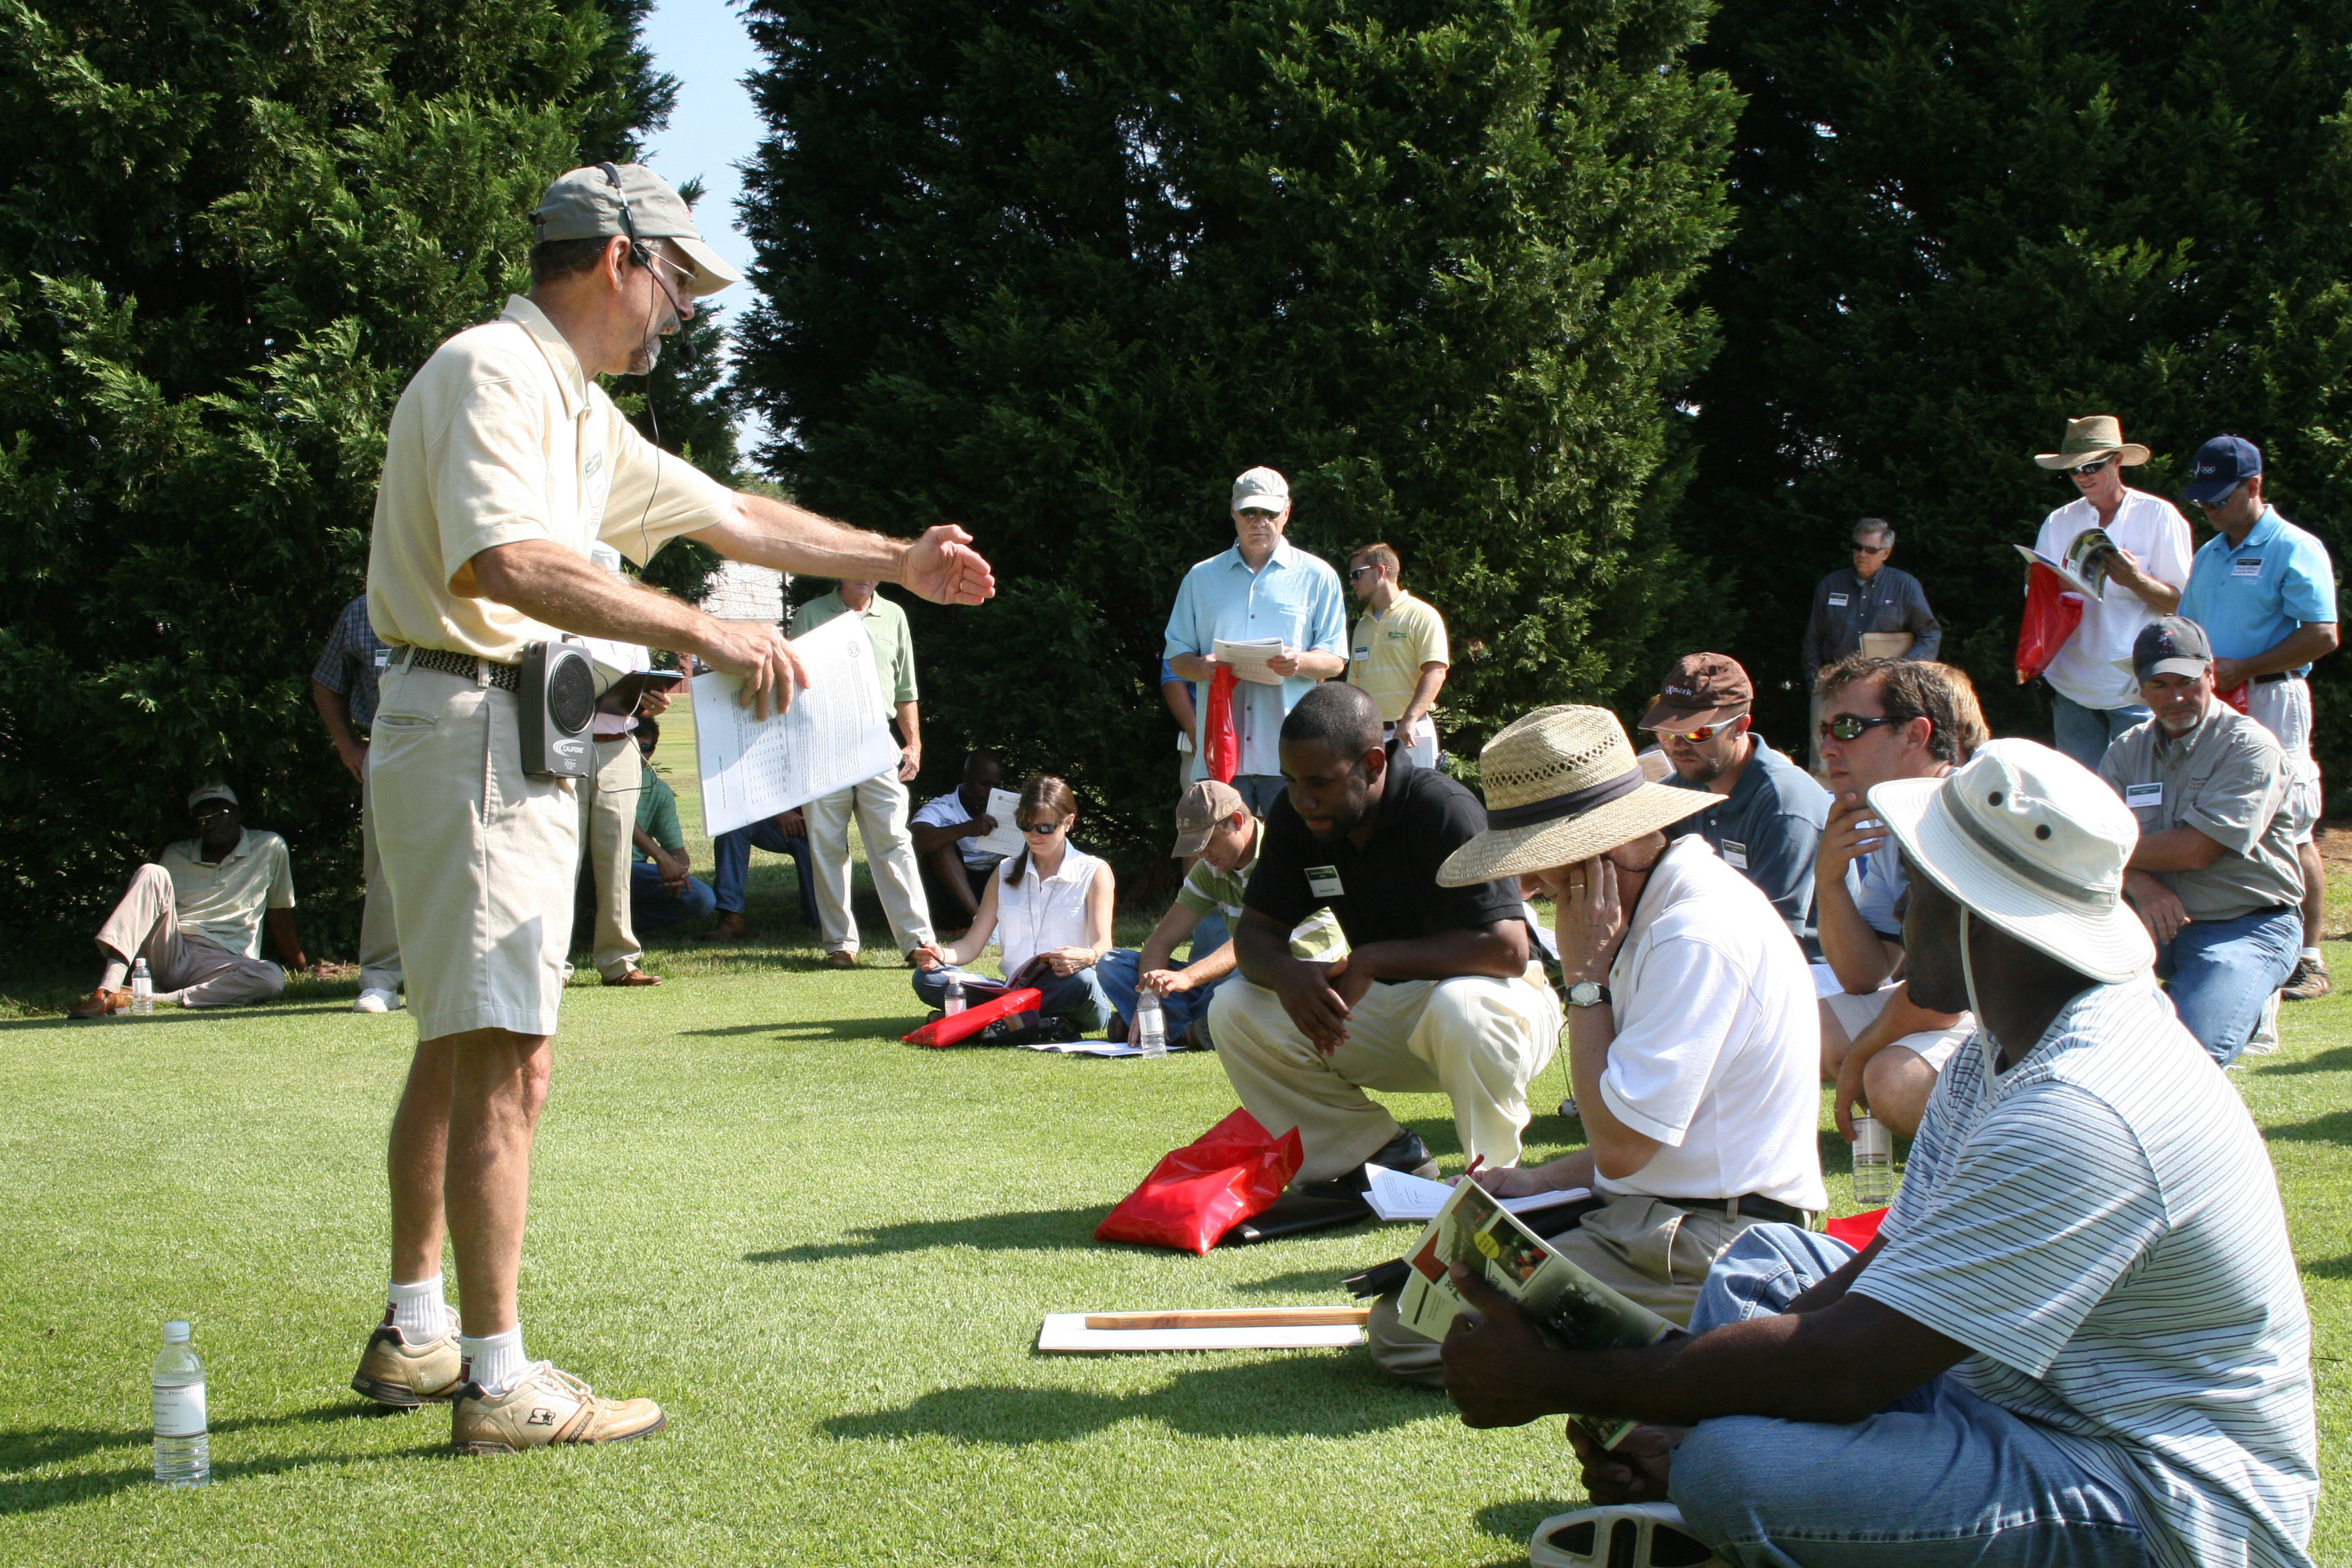 Hundreds of turfgrass professionals are expected to attended the bi-annual UGA Turfgrass Field Day set for Aug. 4 on the campus in Griffin, Ga. UGA plant pathologist Lee Burpee is shown discussing disease control at the 2008 field day.